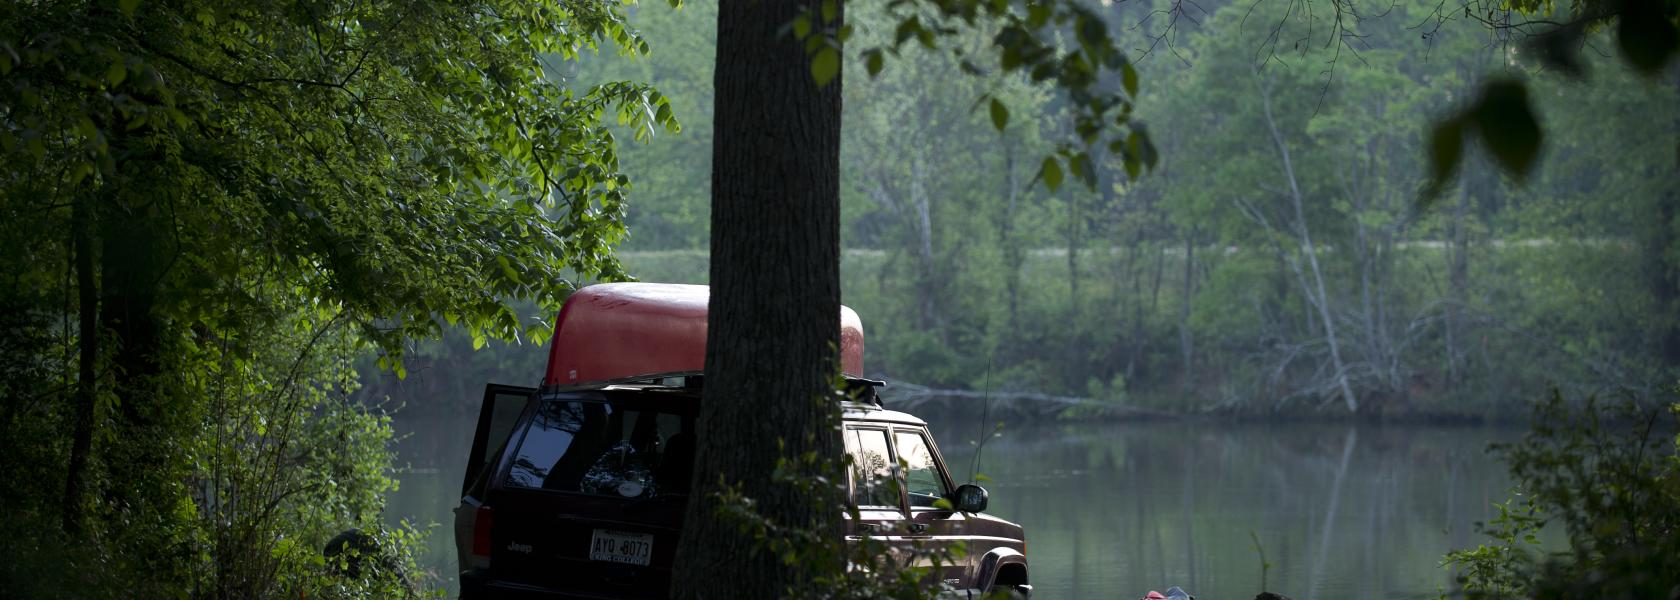 canoe and truck at river bank